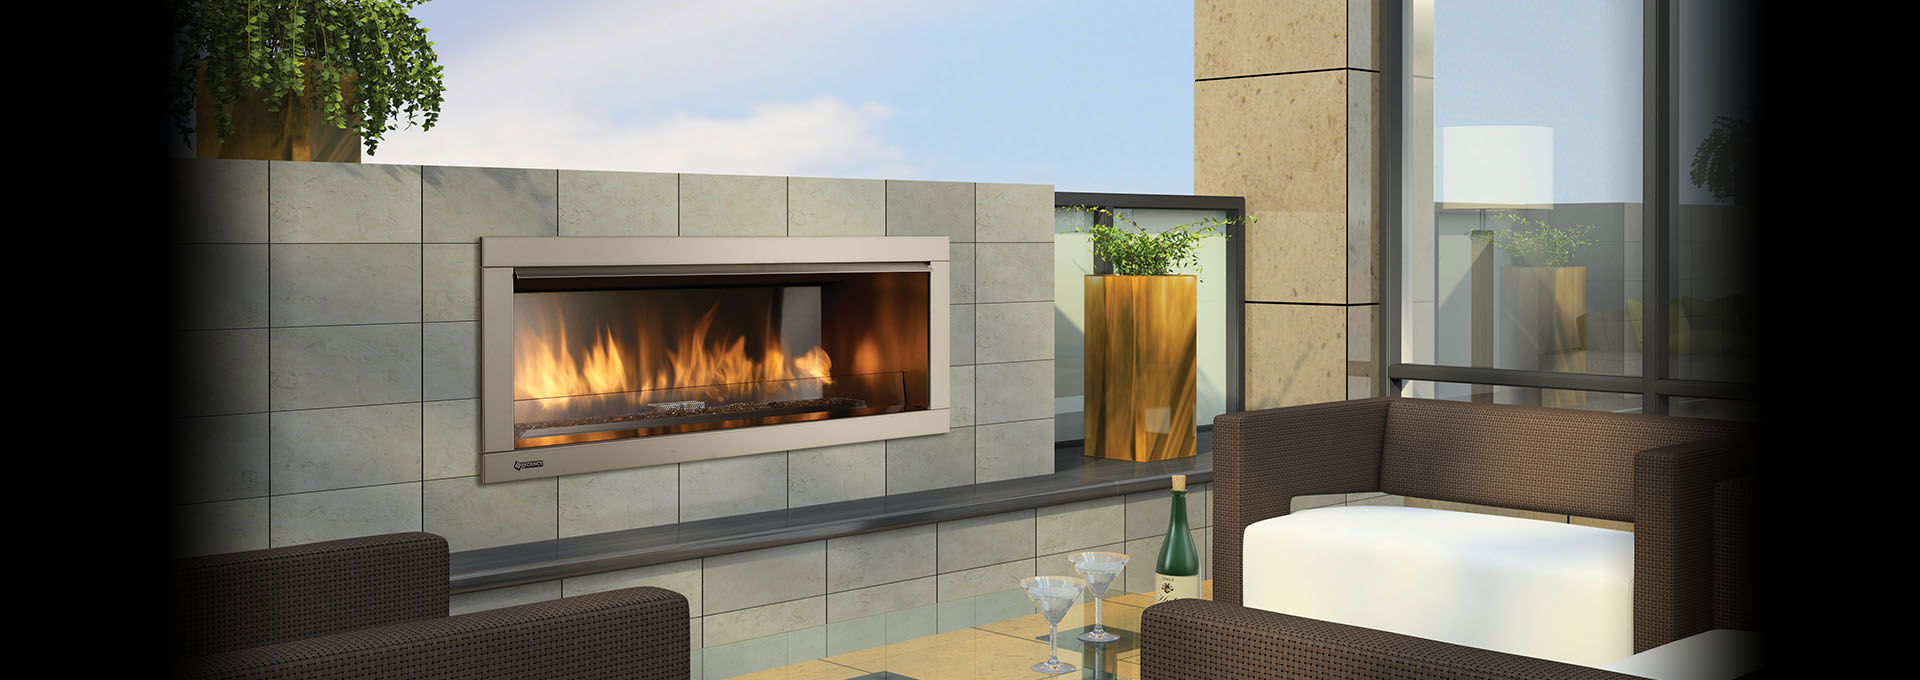 Outdoor Gas Fireplaces Regency Horizon Outdoor Gas Fireplace